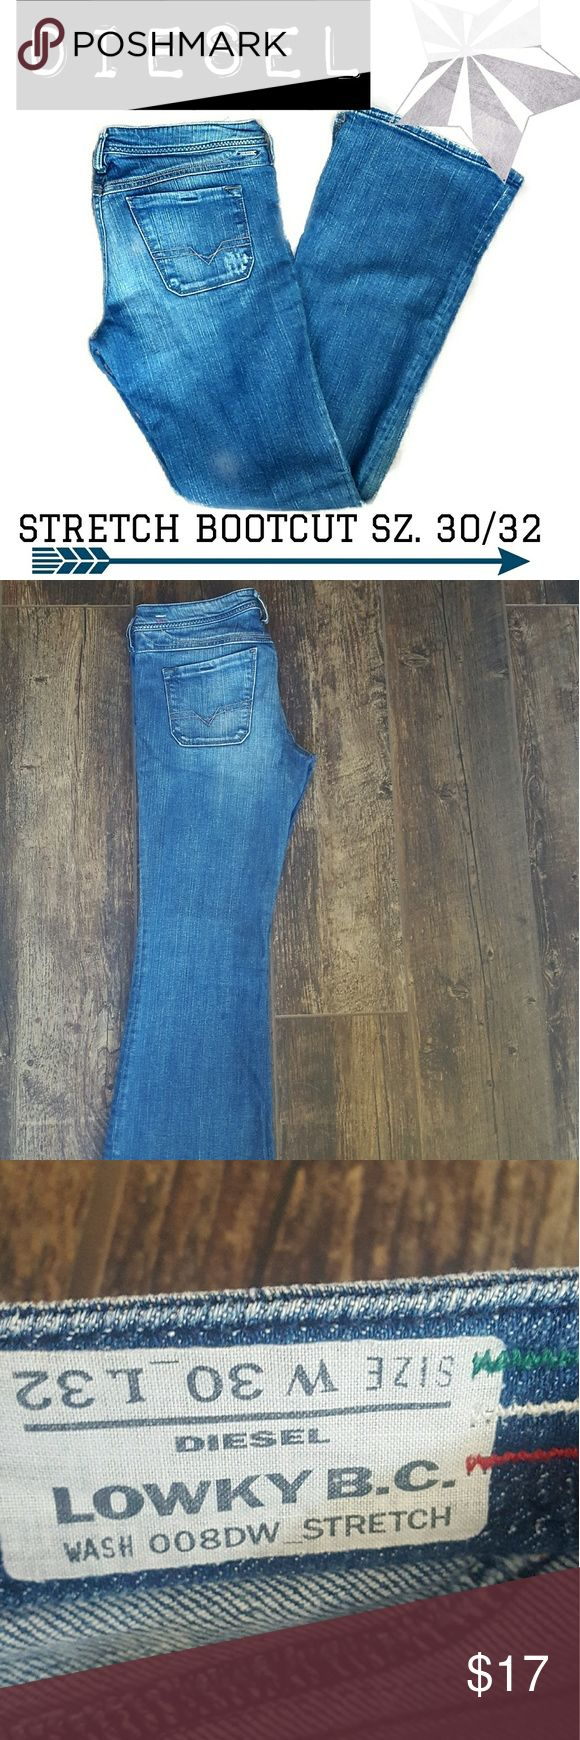 DIESEL Industry Jeans sz.30/32 bootcut Super cute bootcut jeans....and very comfortable!!!  They have a lot of STRETCH in them and they are super stylish and flattering.  No rips or stains.  I only worry them a few times Diesel Jeans Boot Cut